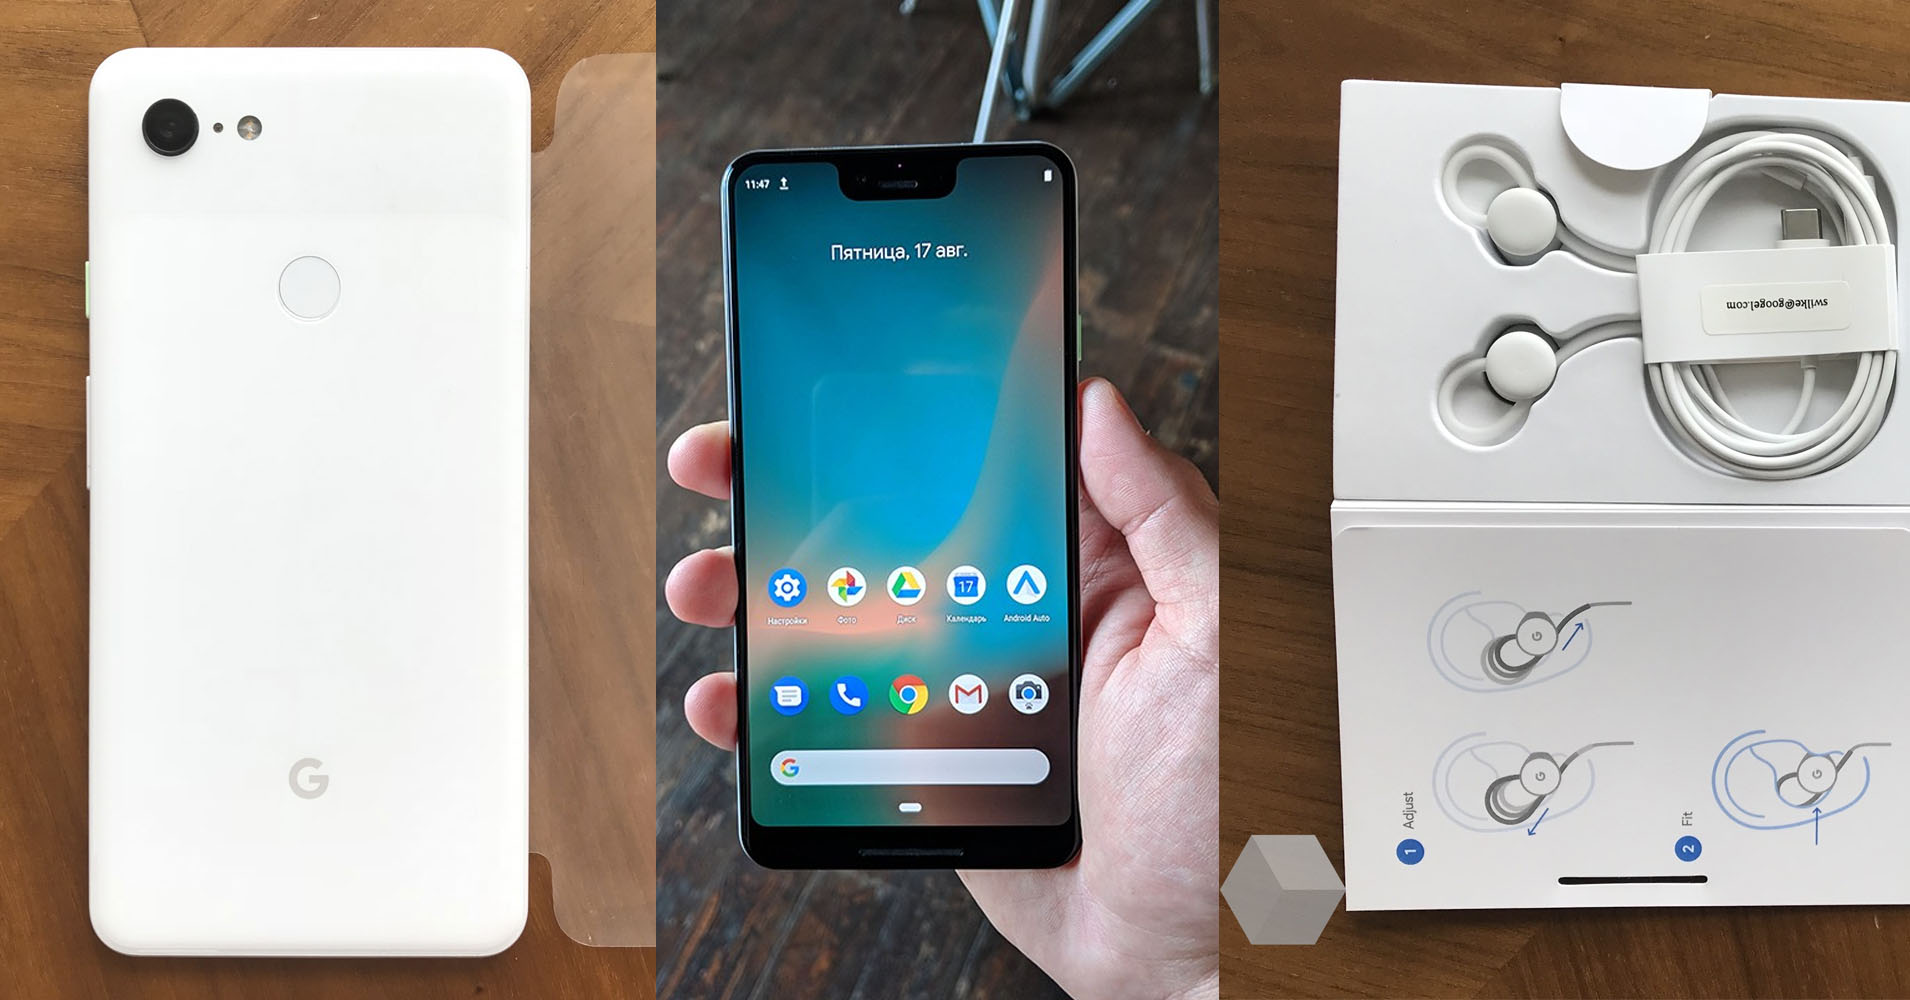 Pixel 3 XL leak shows off working phone and camera samples